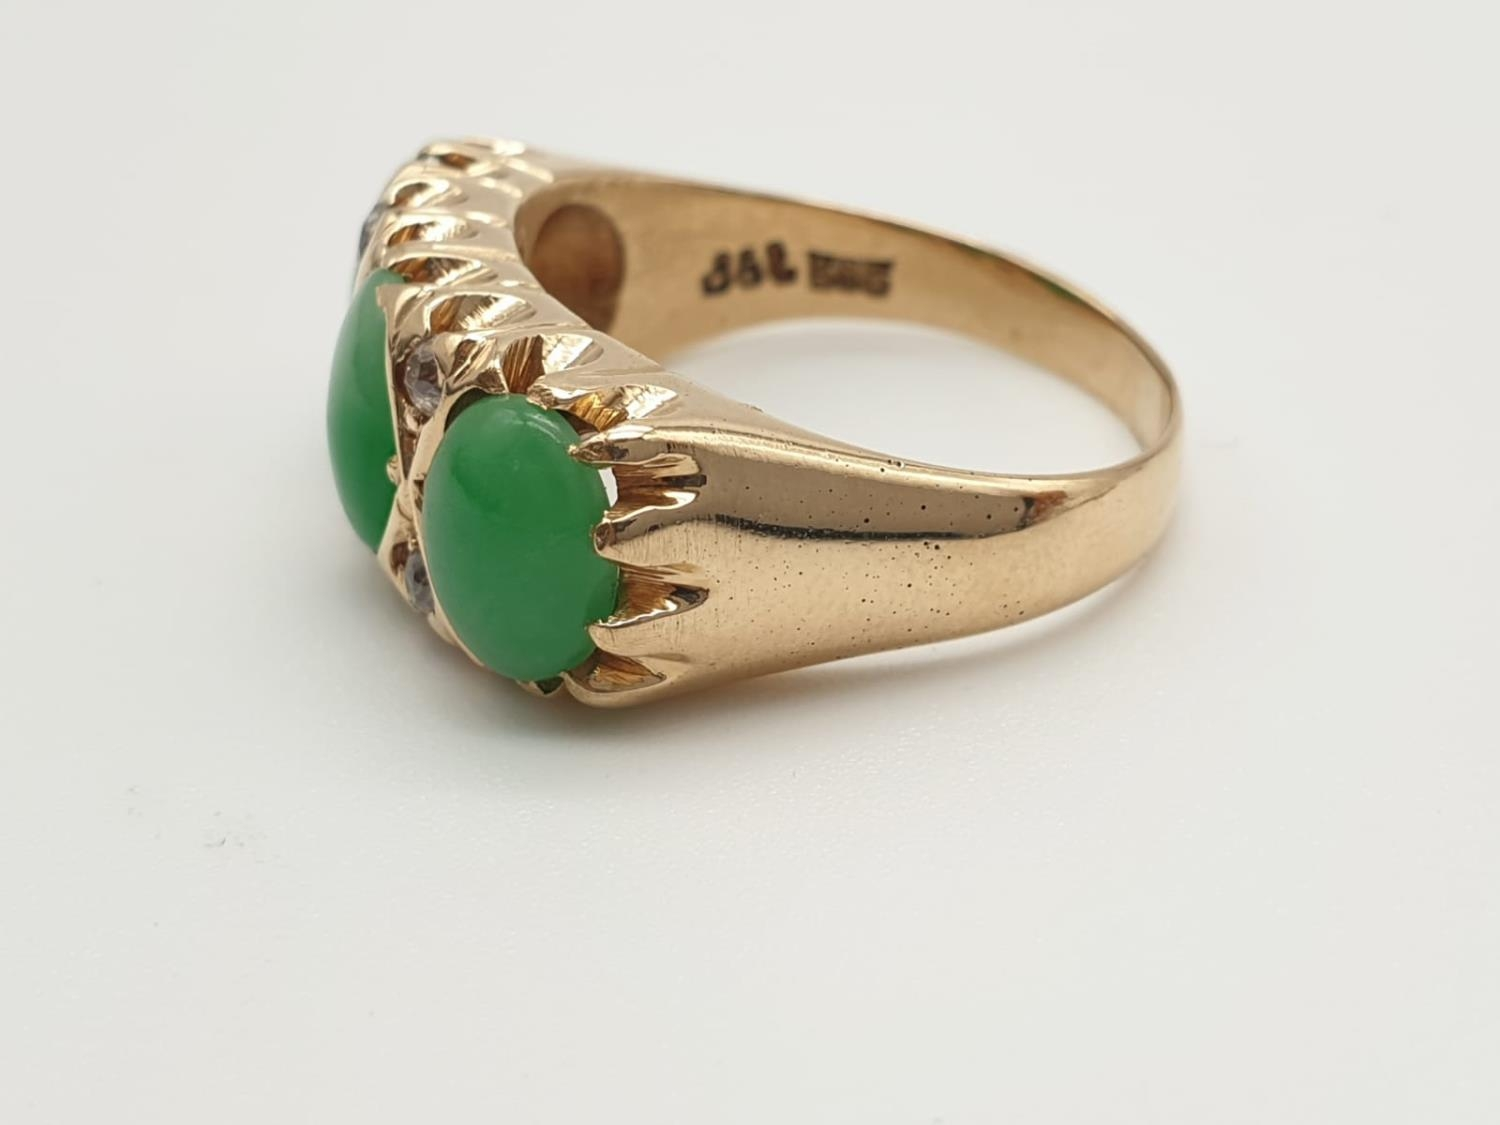 14k yellow gold antique ring with trilogy green jadeite and decorated with diamonds, weight 8.6g and - Image 2 of 6